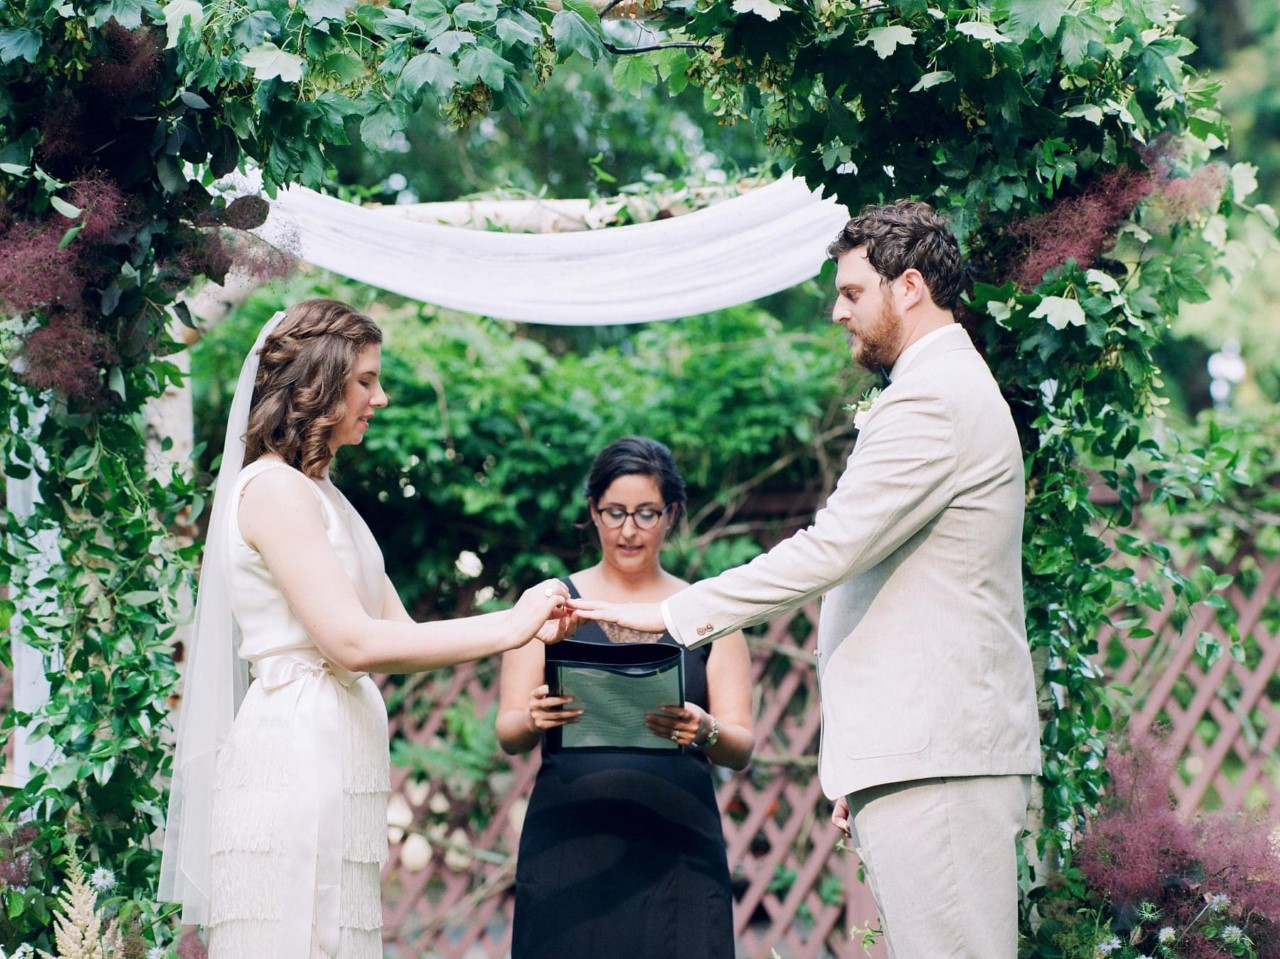 Wedding ceremony in the Lippitt House garden